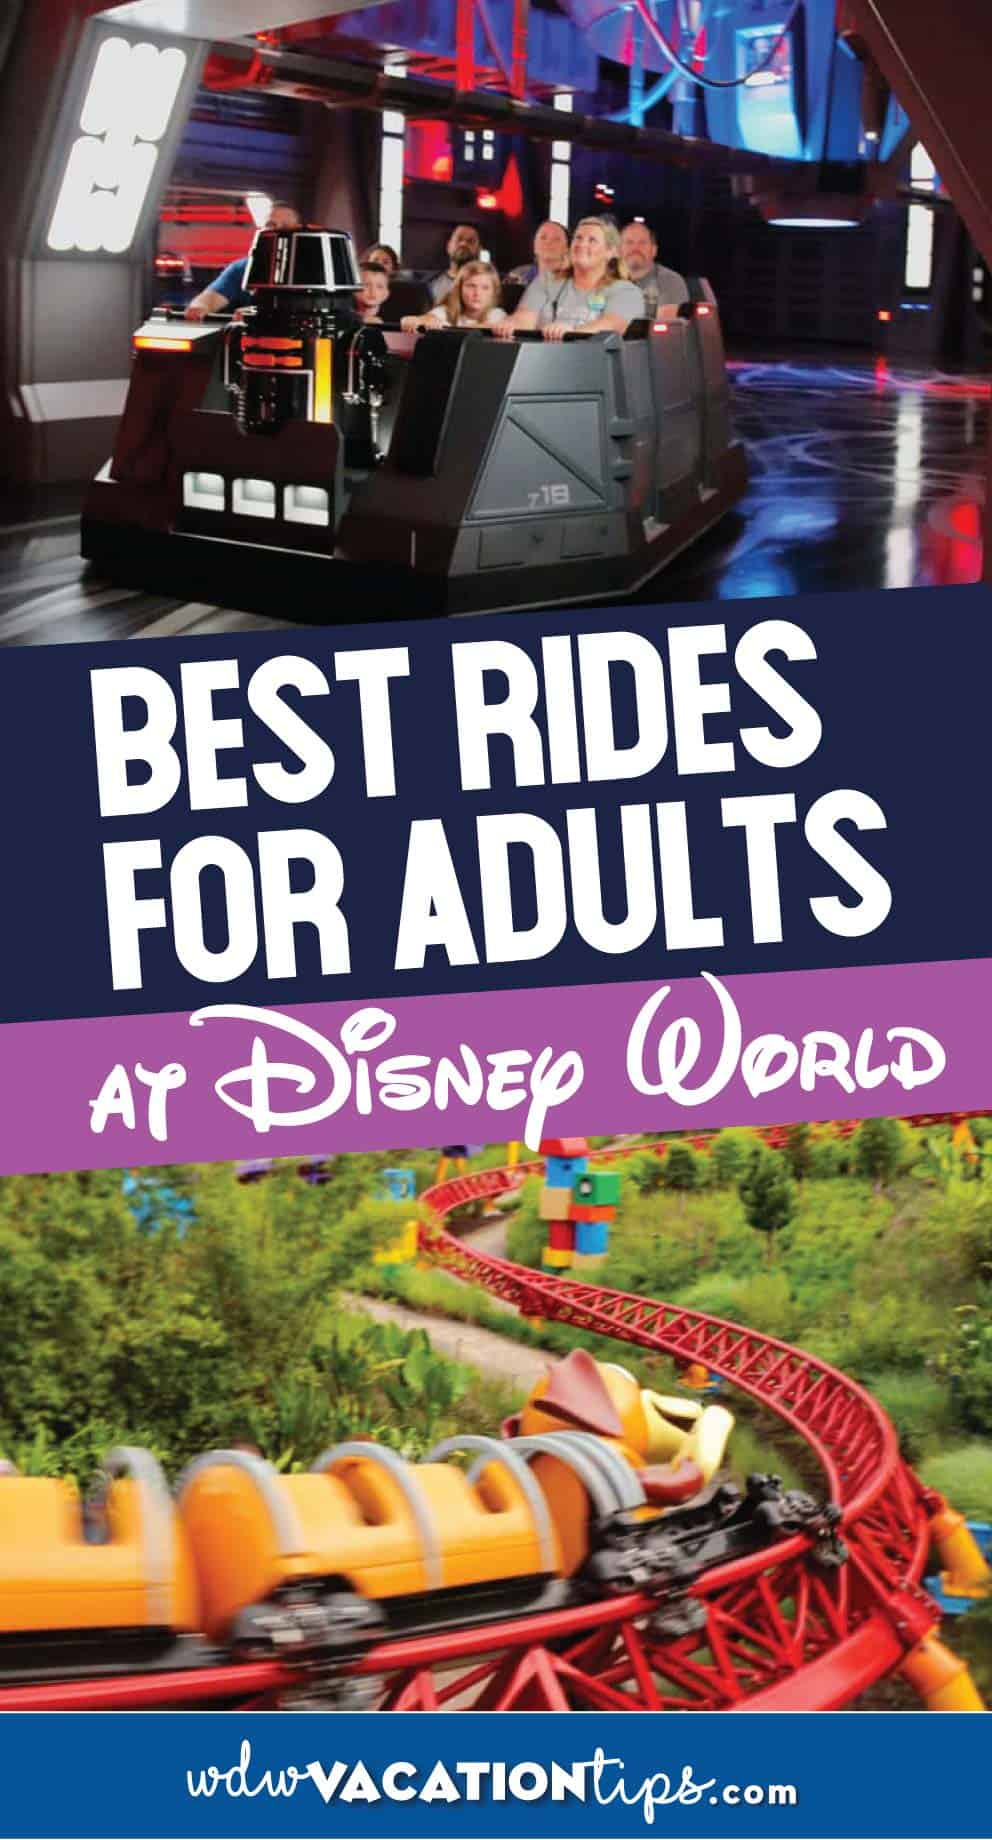 Disney World rides for adults